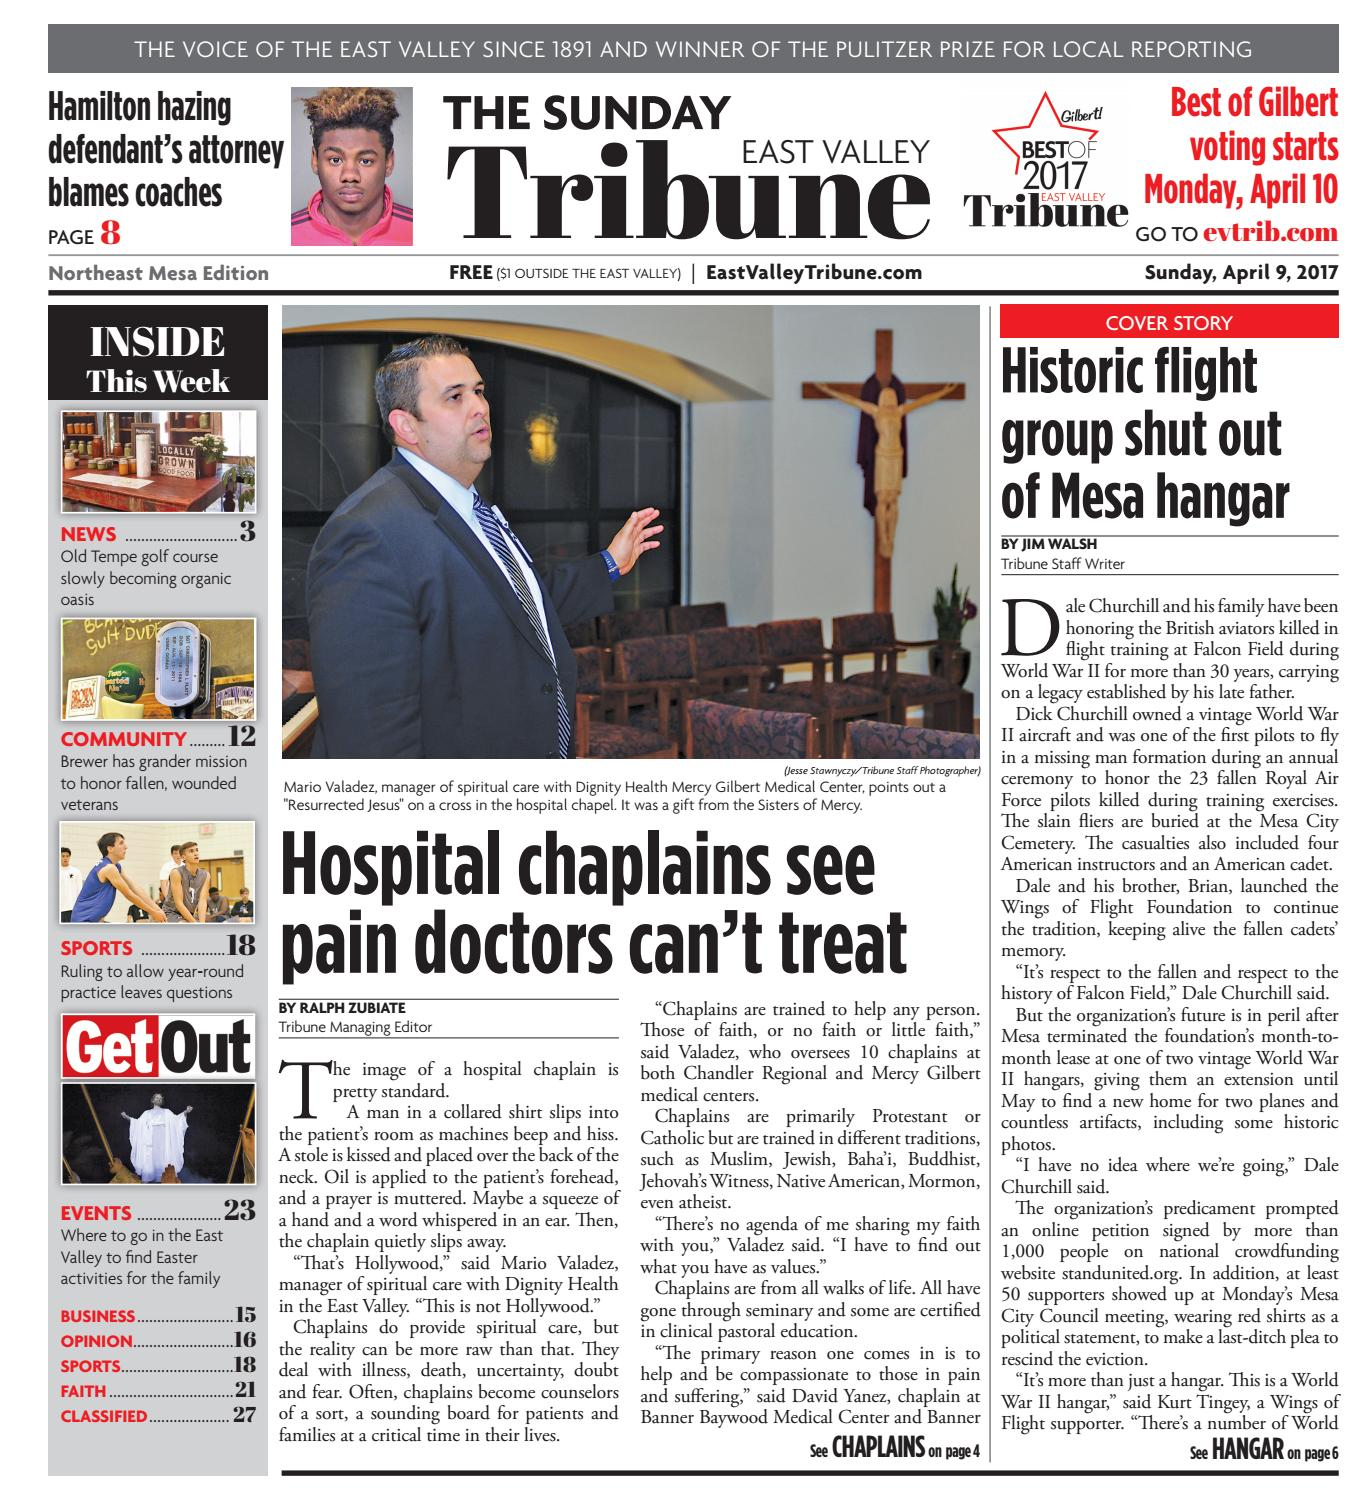 East Valley Tribune: Northeast Mesa Edition - April 9, 2017 by Times Media Group - issuu